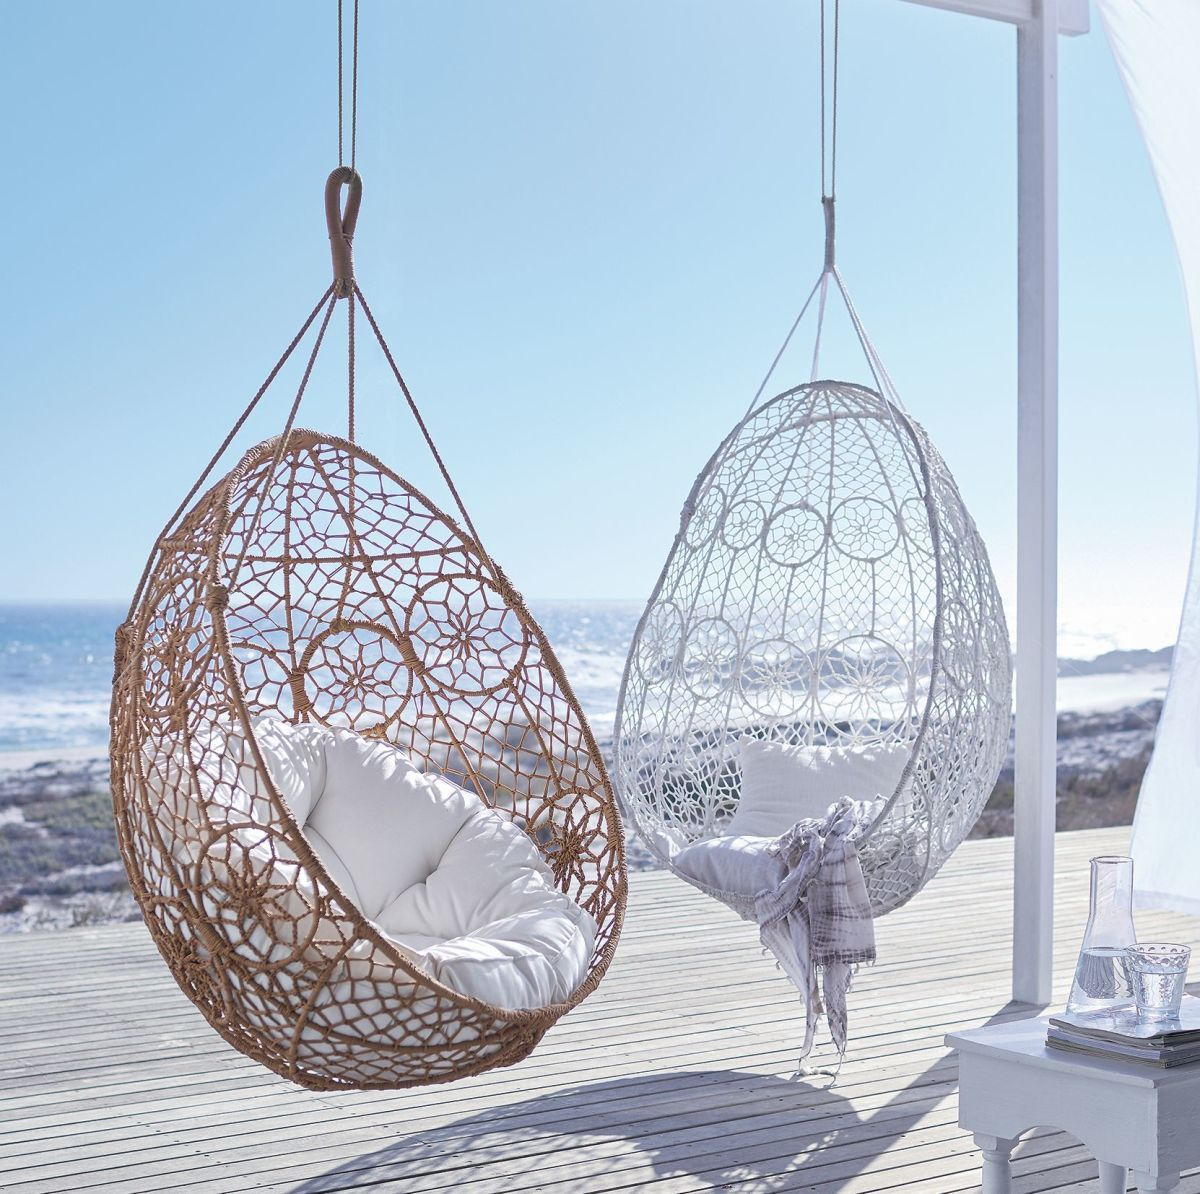 Hängesessel Metall Hanging Chair Boho Hängesessel Outdoorgeeignet Metall